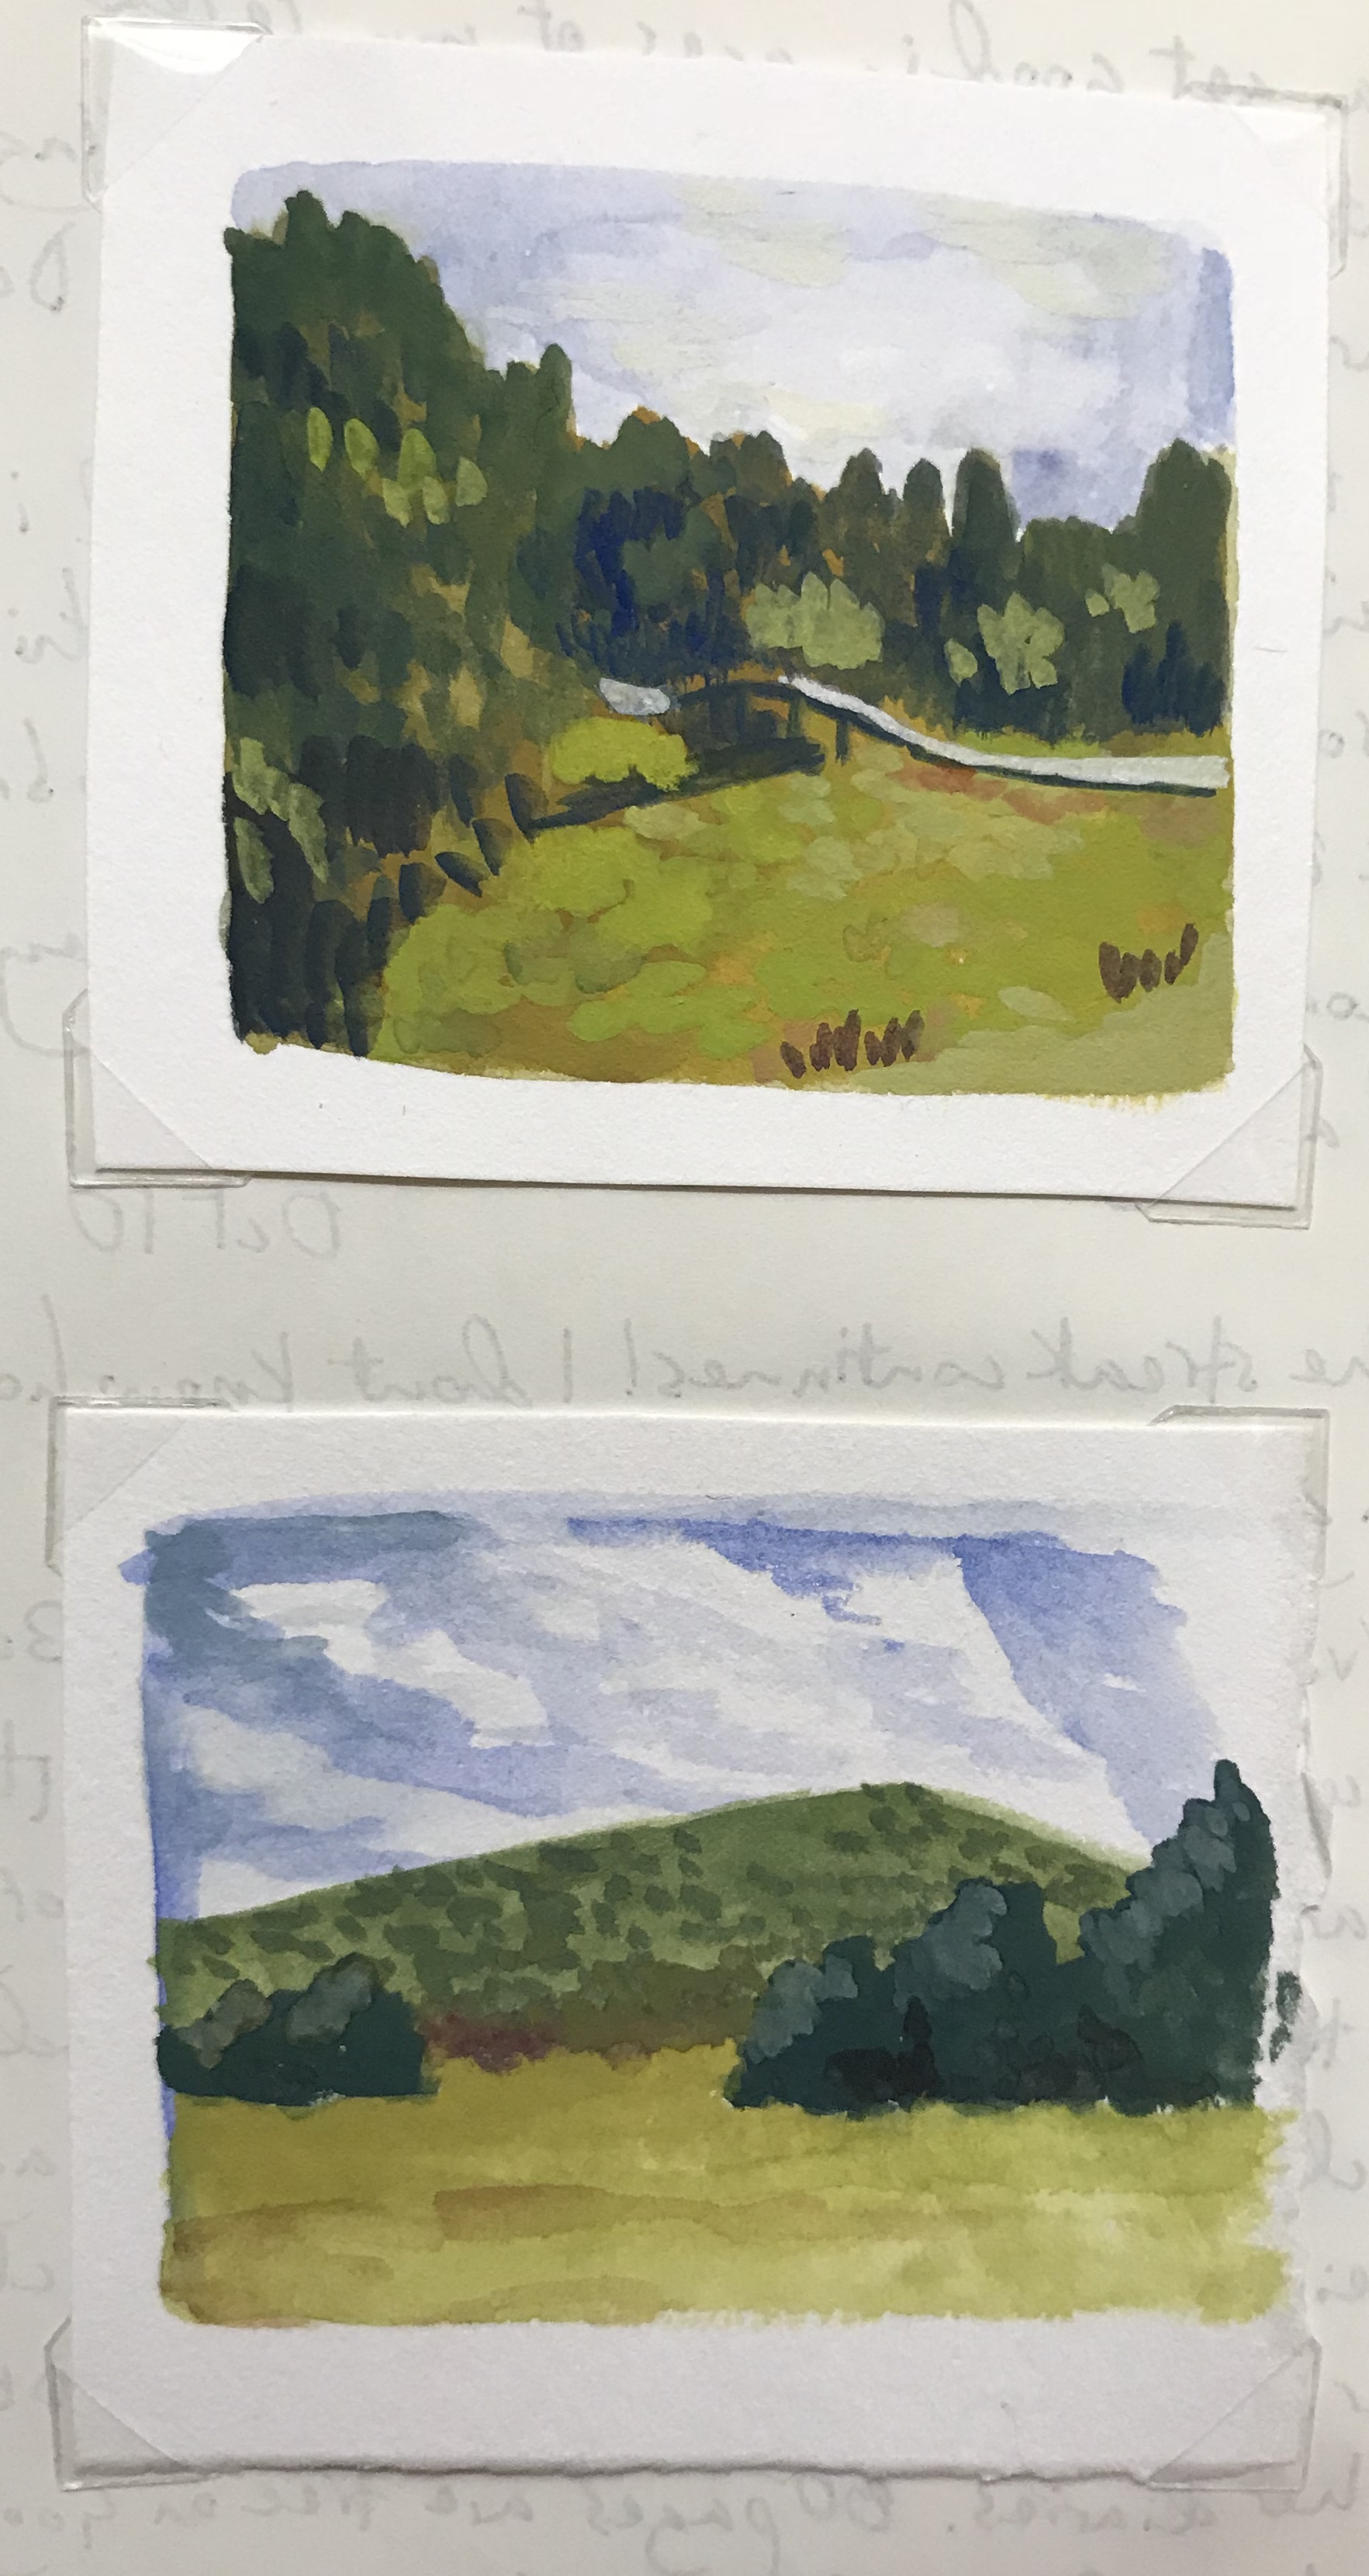 OldNorthBridgeandMountainView_Gouache.jpg